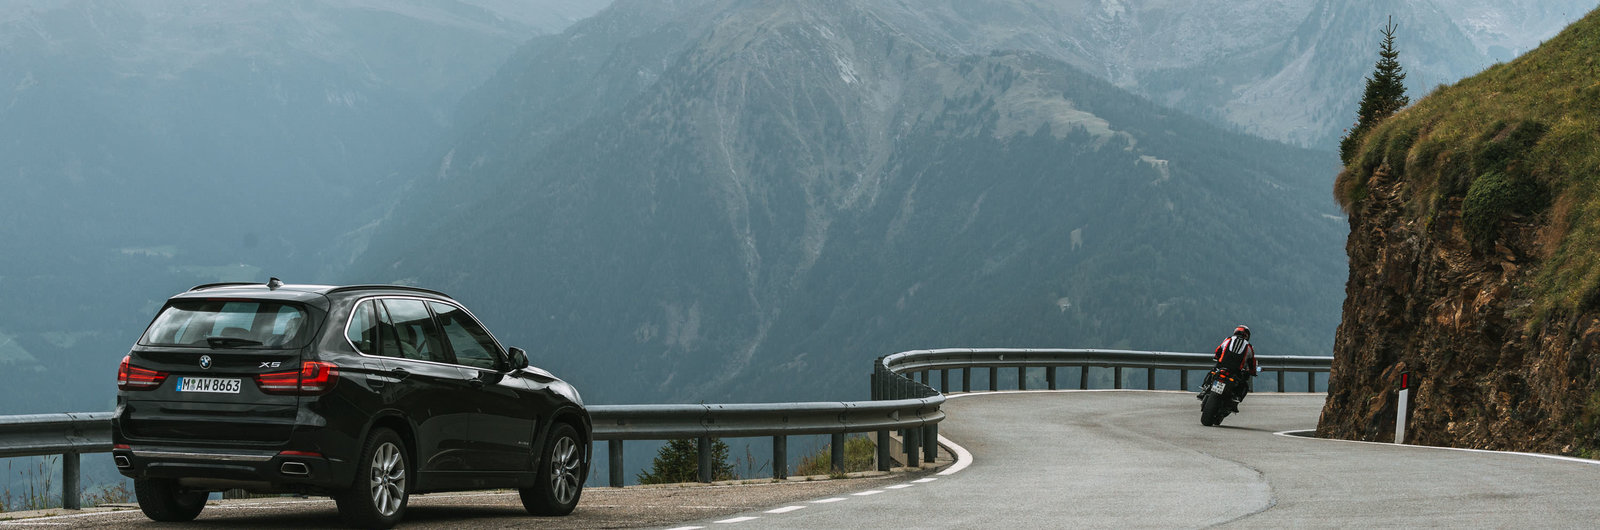 Car Rental in Geneva (Genf) Airport | Rent a Car deals with SIXT